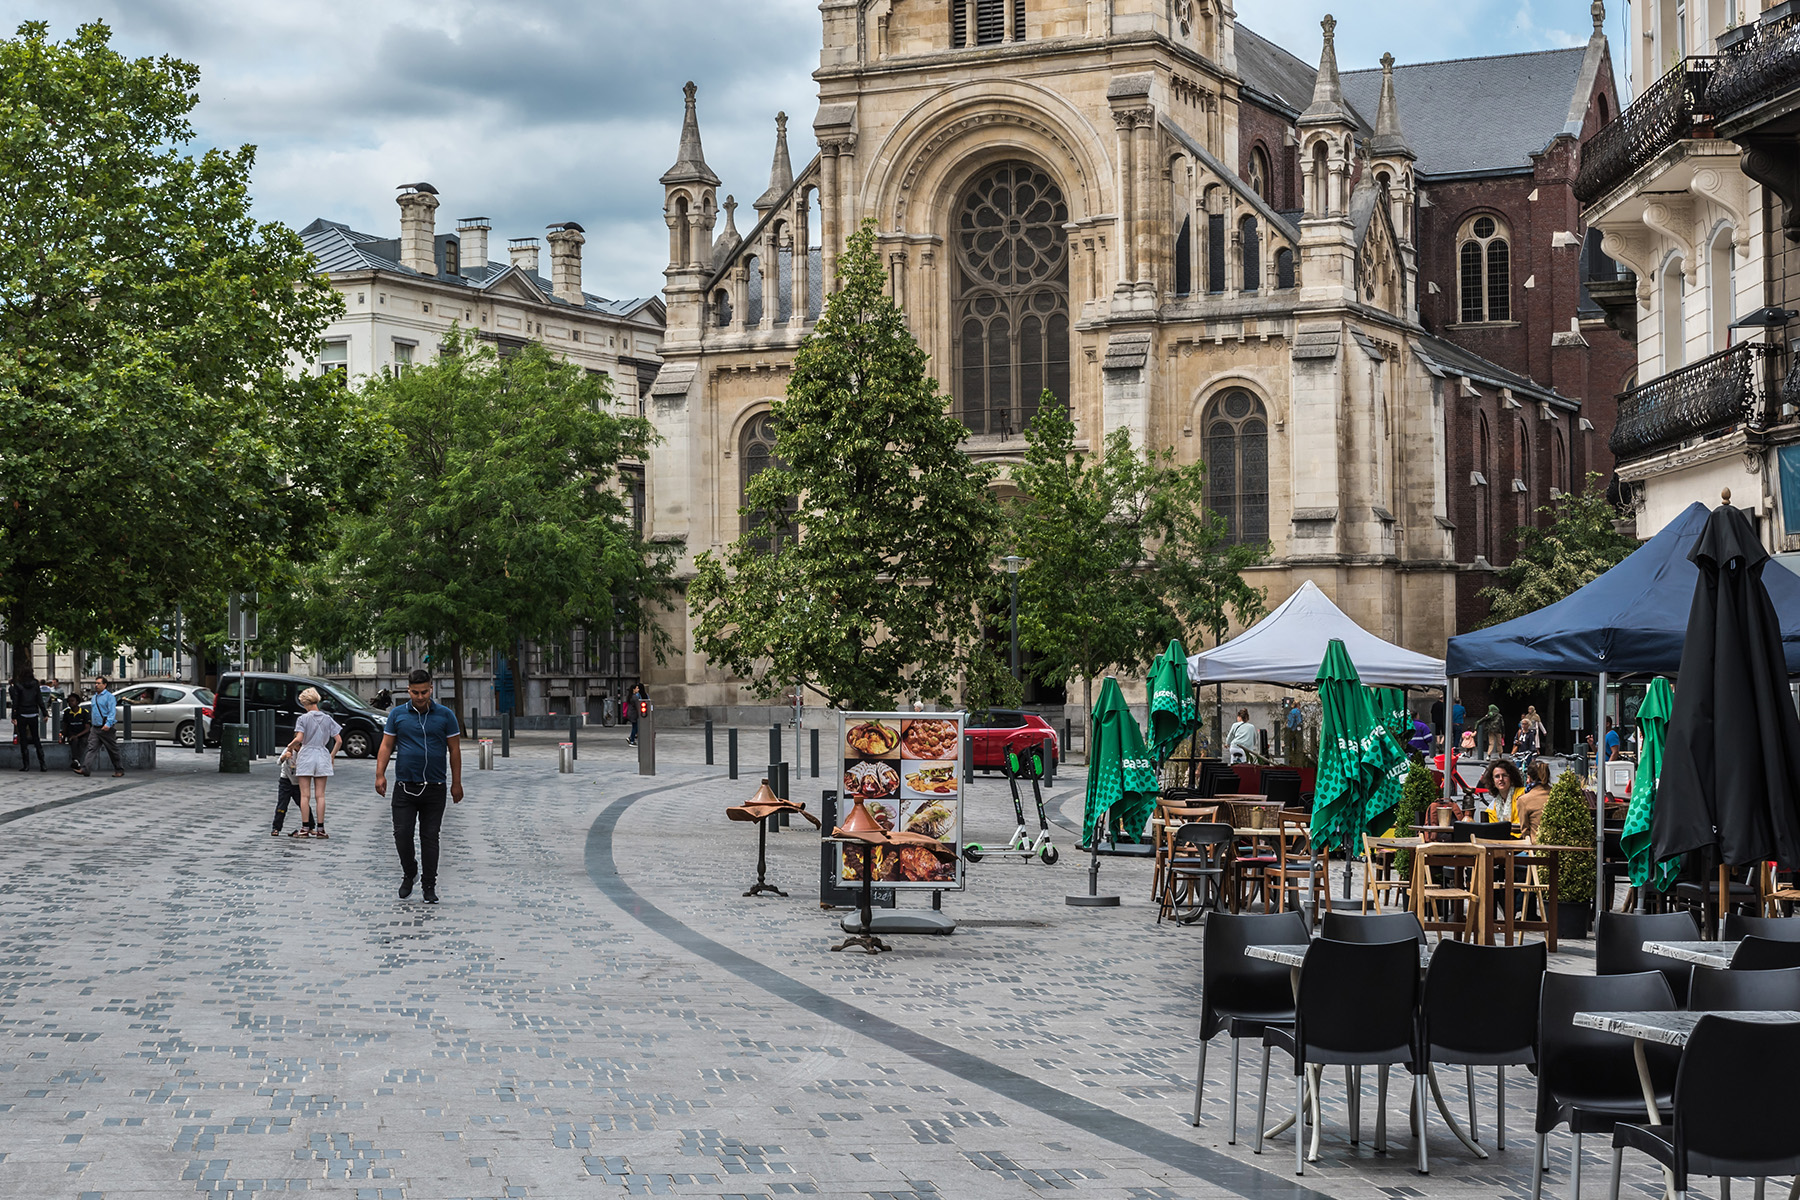 Saint-Gilles is home to Parvis, one of the most lively squares in Brussels